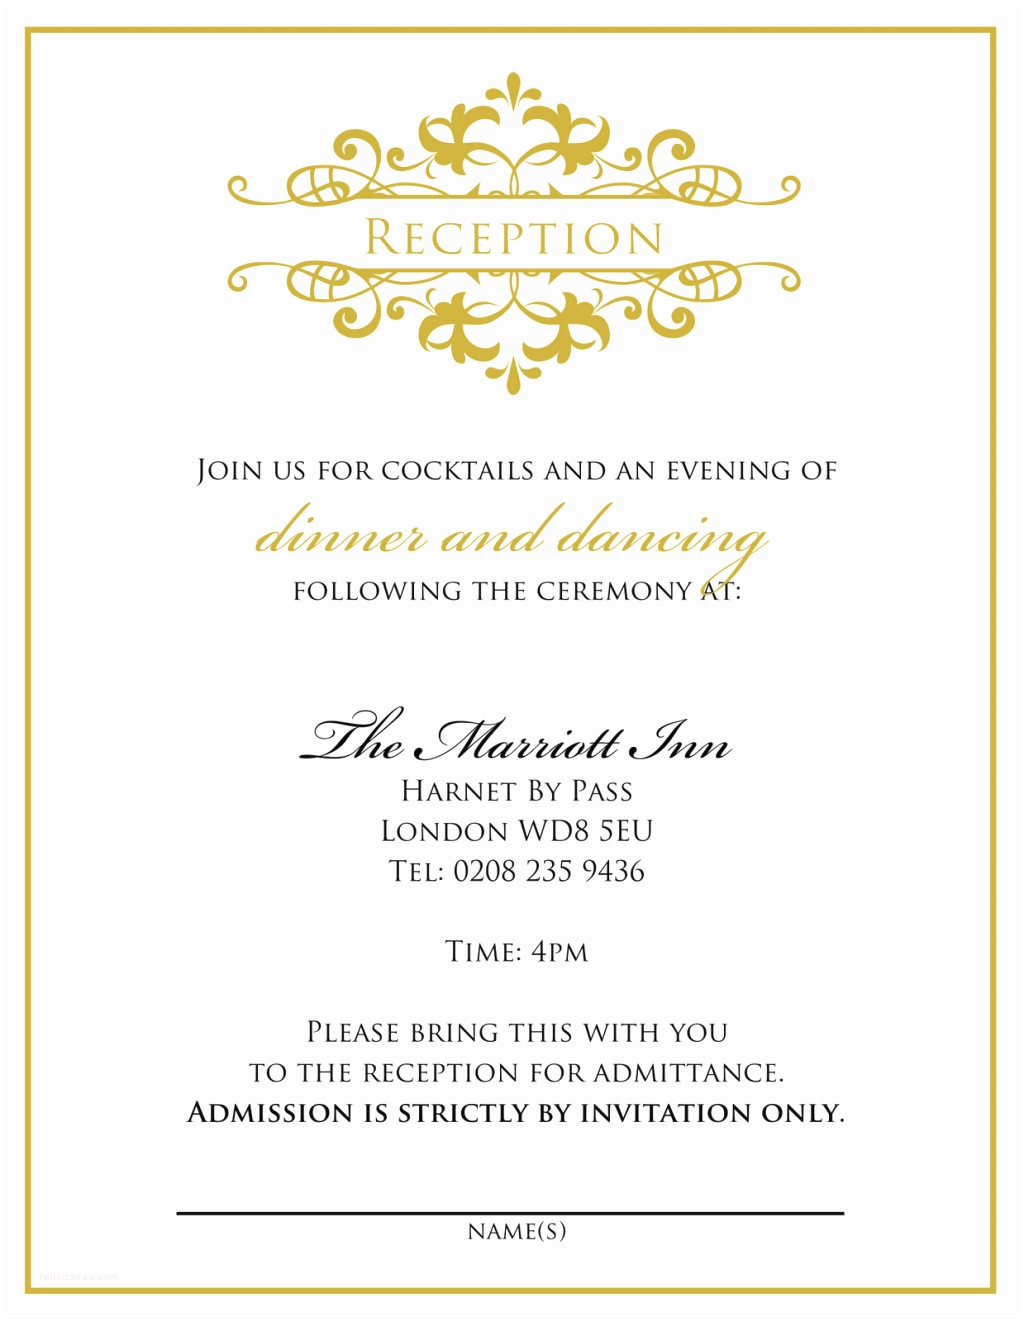 How To Write Time On Wedding Invitation